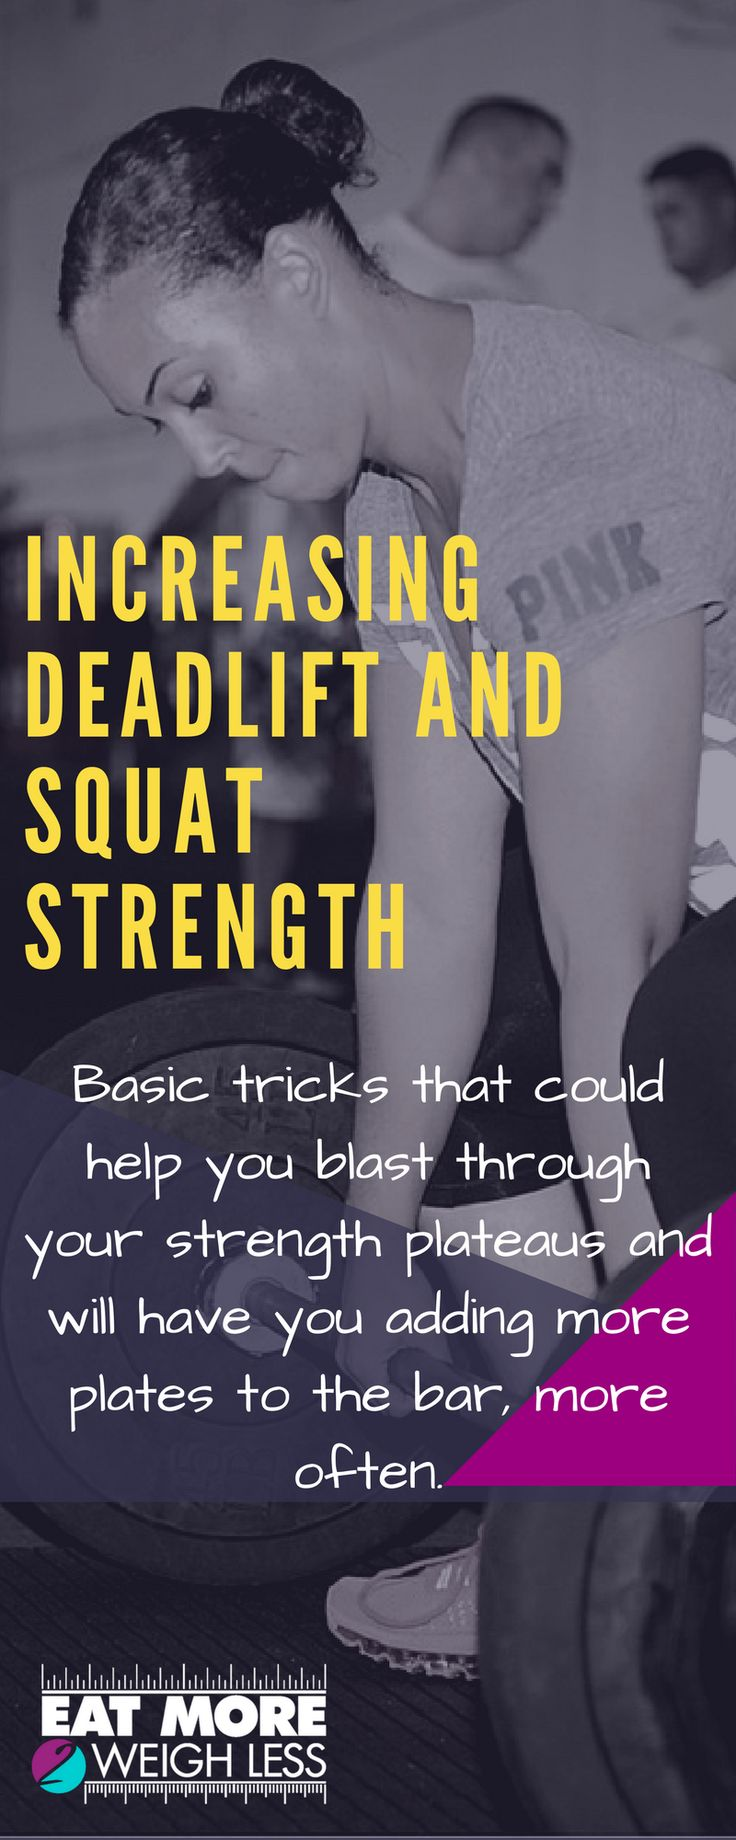 Increasing Deadlift and Squat Strength - If you've been lifting for a while and are ready to start pushing your maxes to the next level, it's good to know a few basic tricks of the strength trade.  Understanding what could help you to blast through your strength plateaus, will have you adding more plates to the bar, more often. #eatmore2weighless